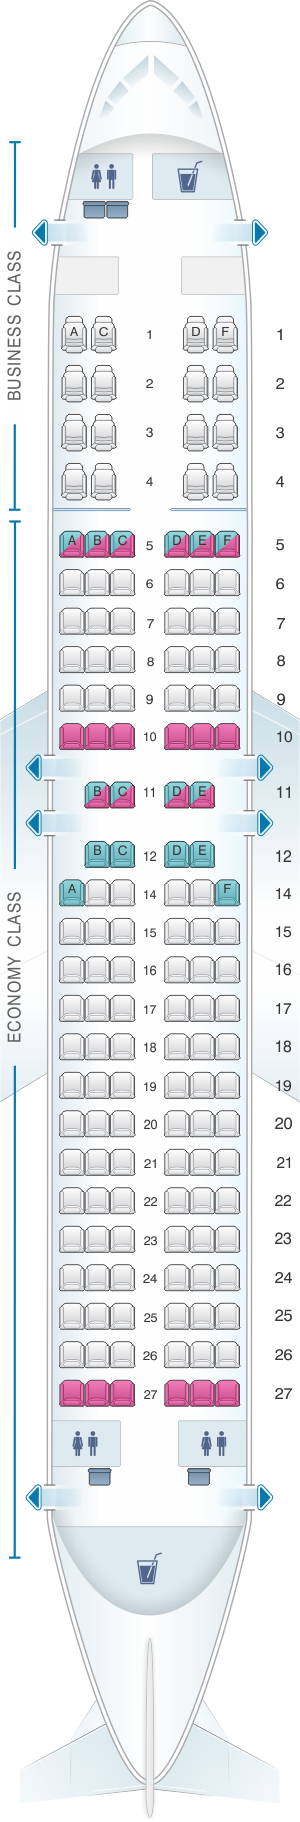 Seat map for Malaysia Airlines Boeing B737 400